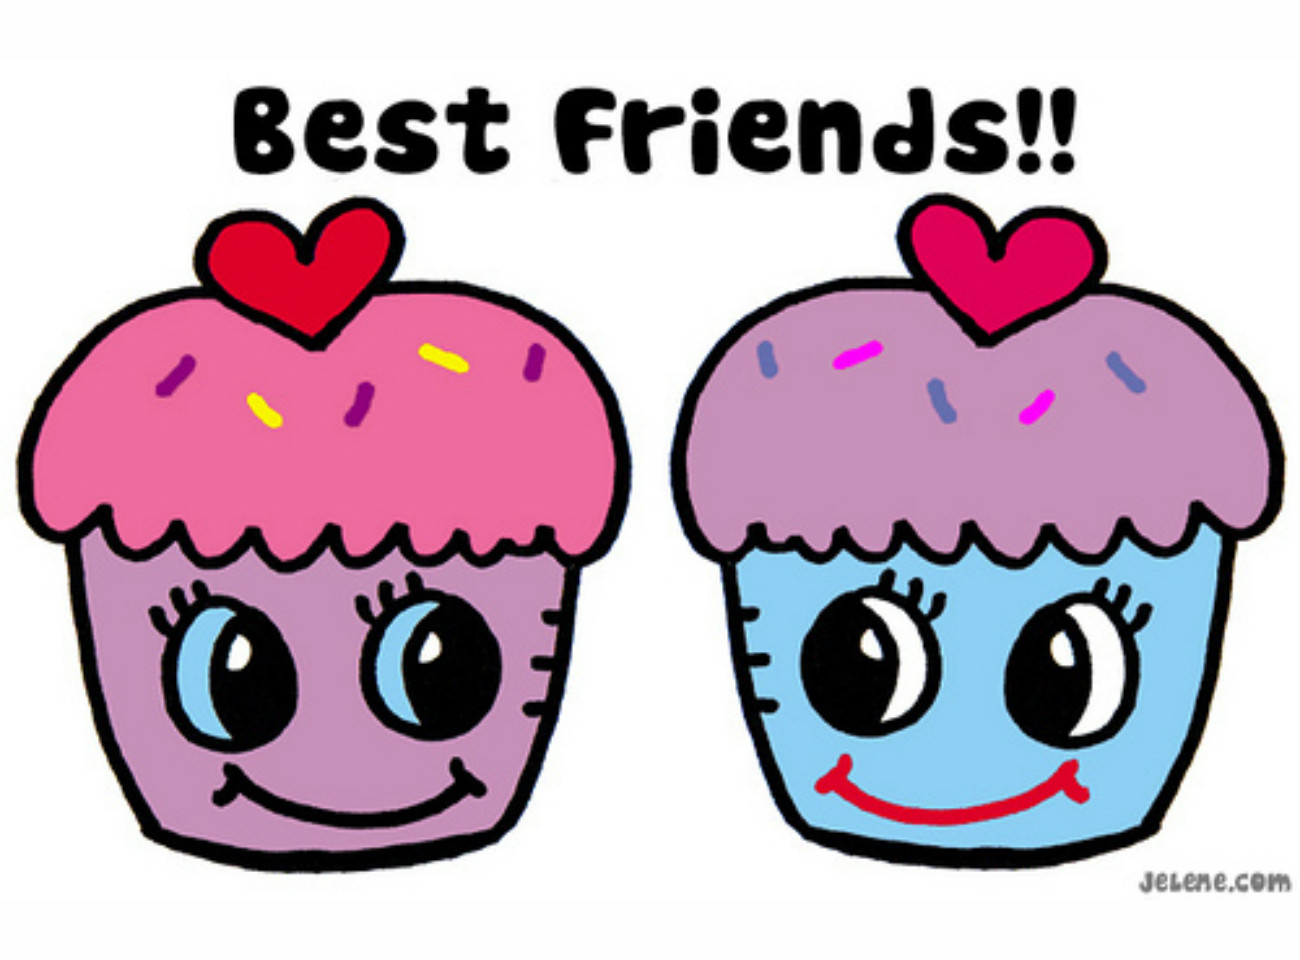 Best Friend Day Clip Art And Text Banner-Best Friend Day Clip Art and Text Banner | Download Free Word-4